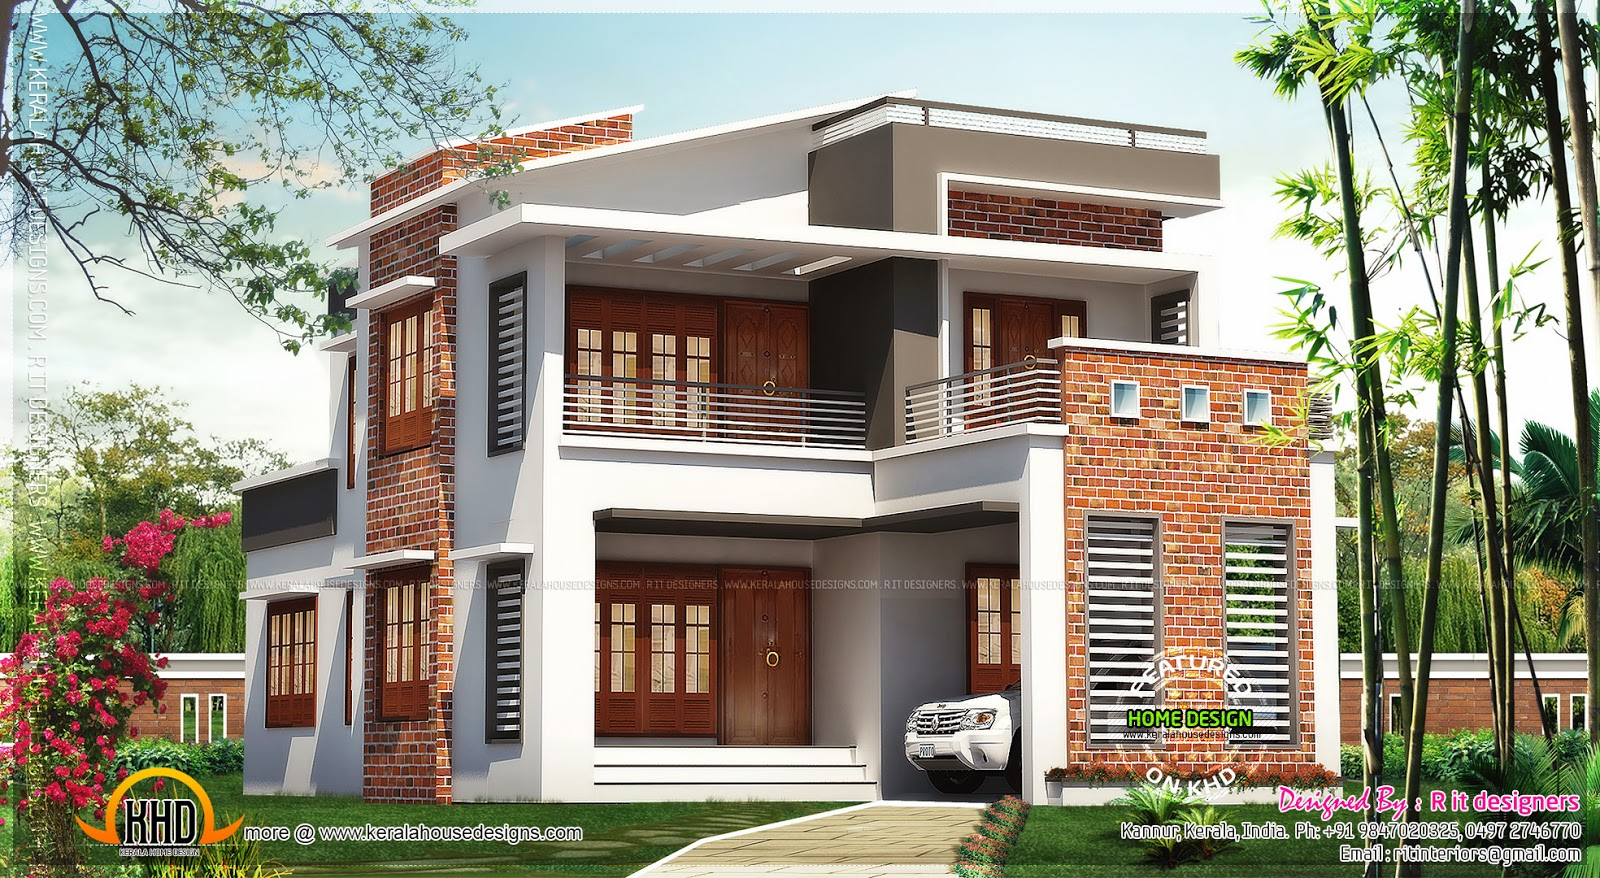 Brick mix house exterior design kerala home design and for Exterior design building